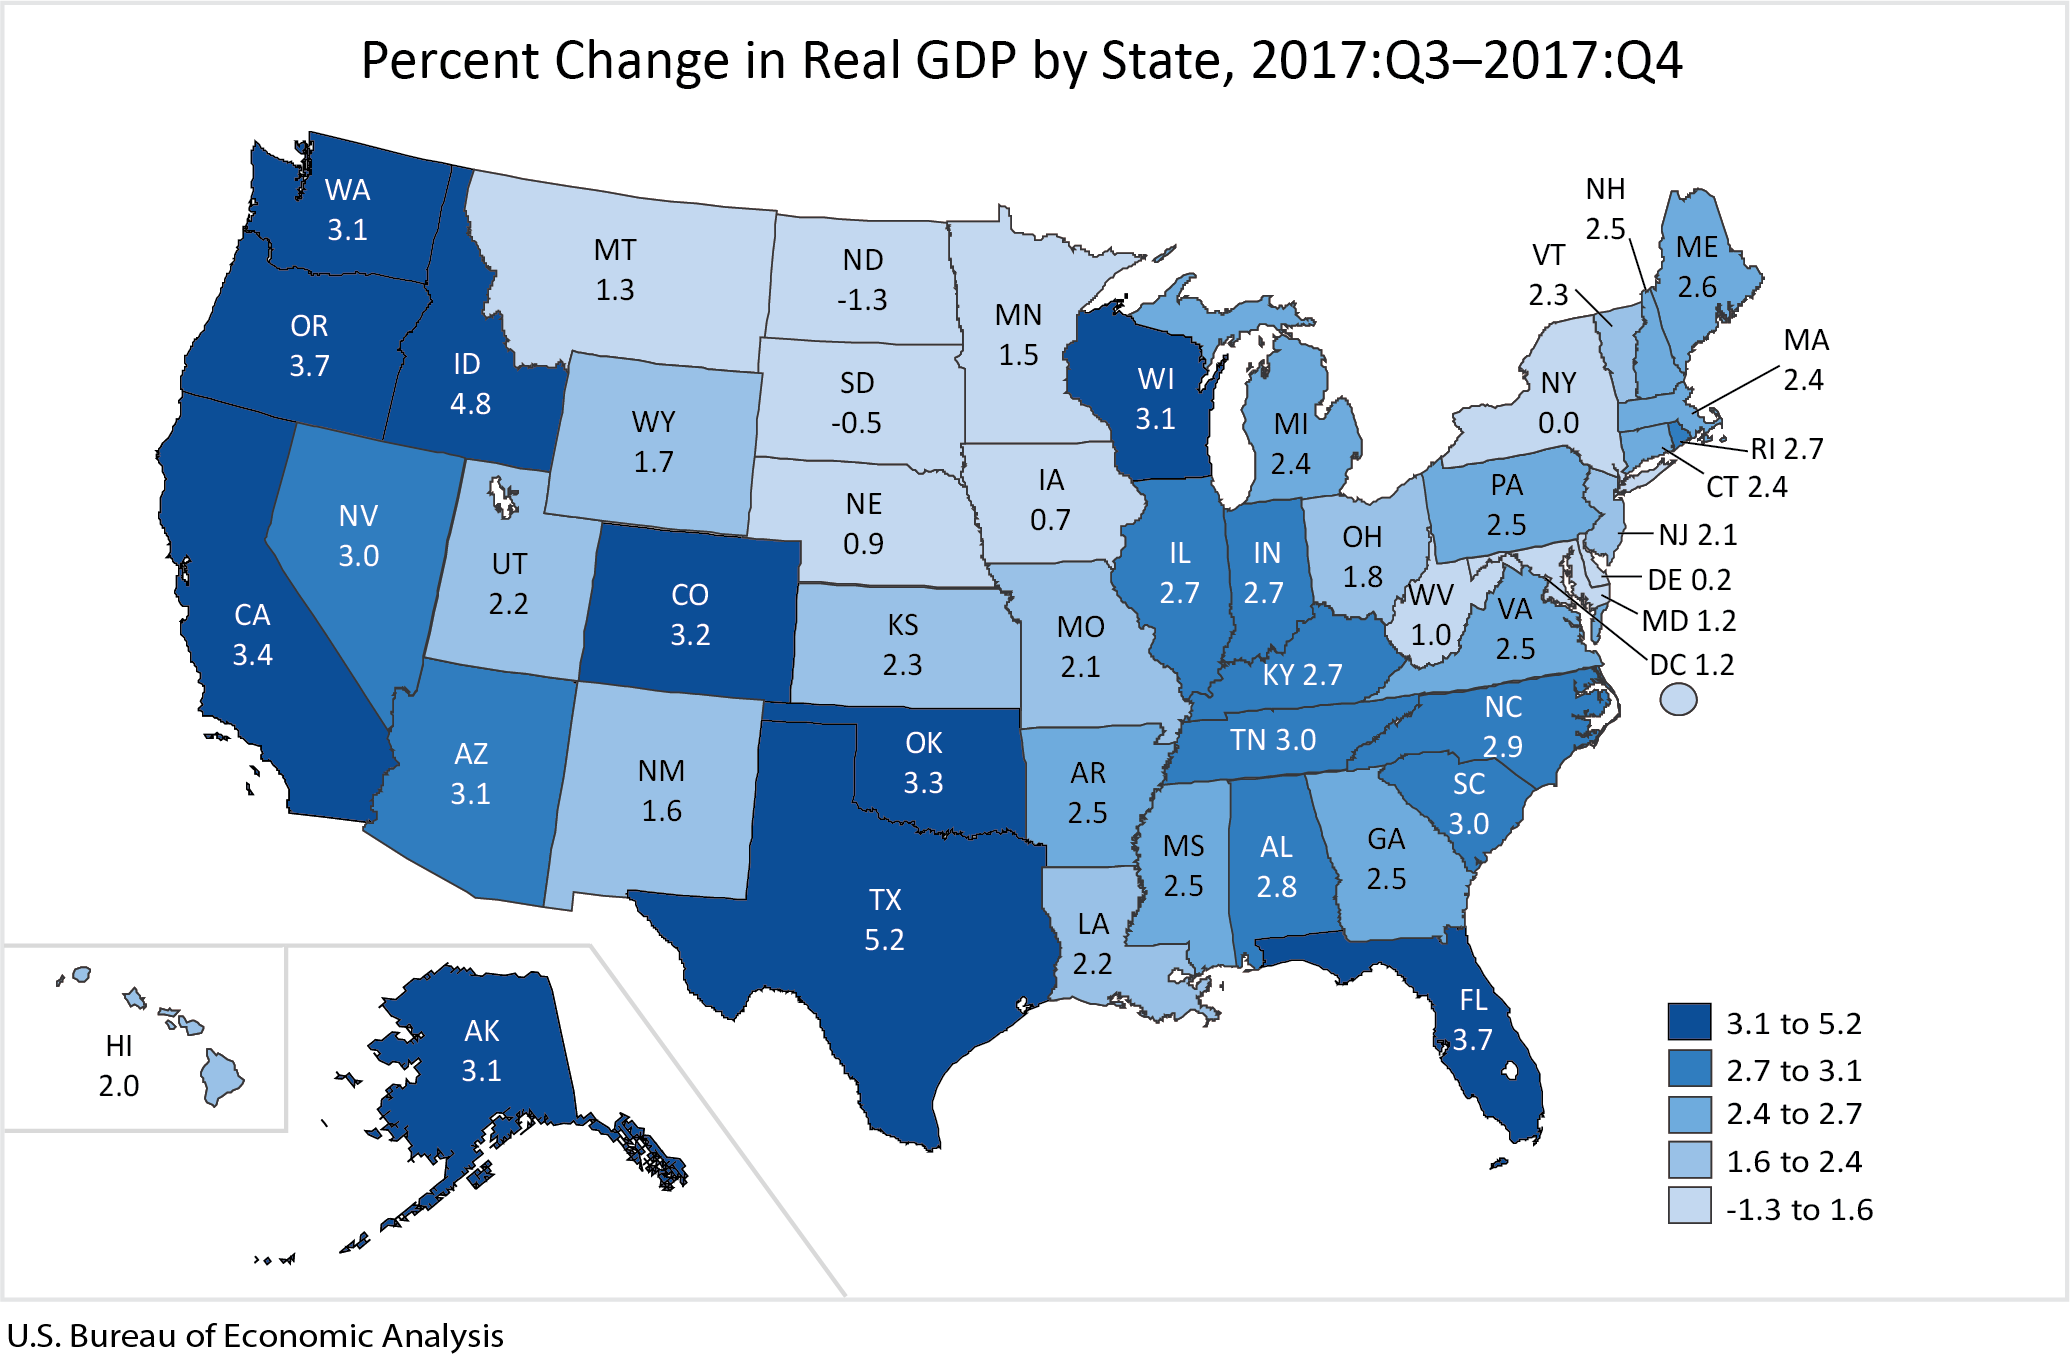 Percent Change in Real GDP by State, 2017:Q3-2017:Q4